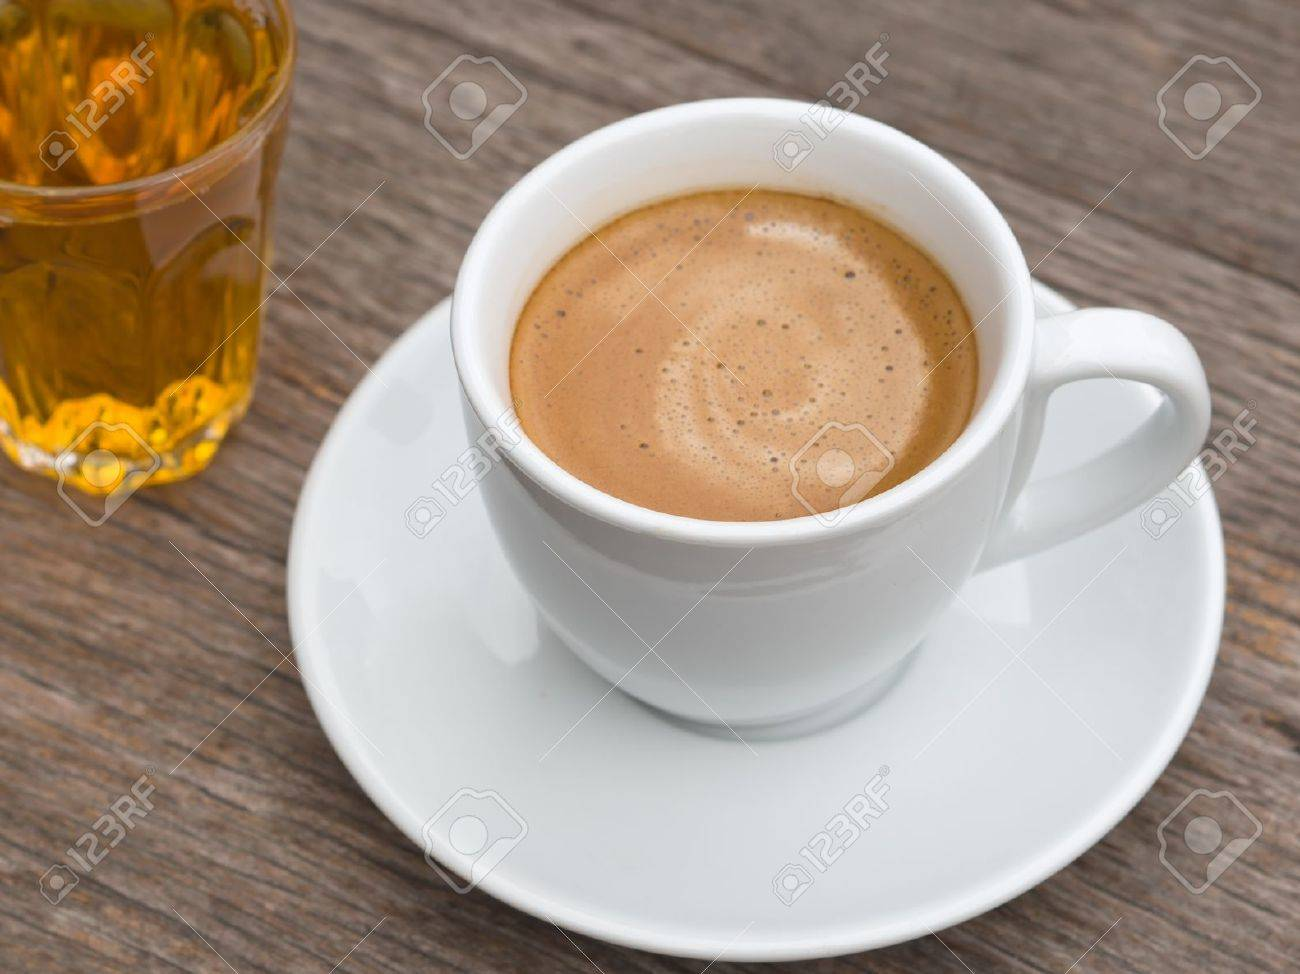 White ceramic Cup of coffee and glass of tea on Wood table Stock Photo - 11966161